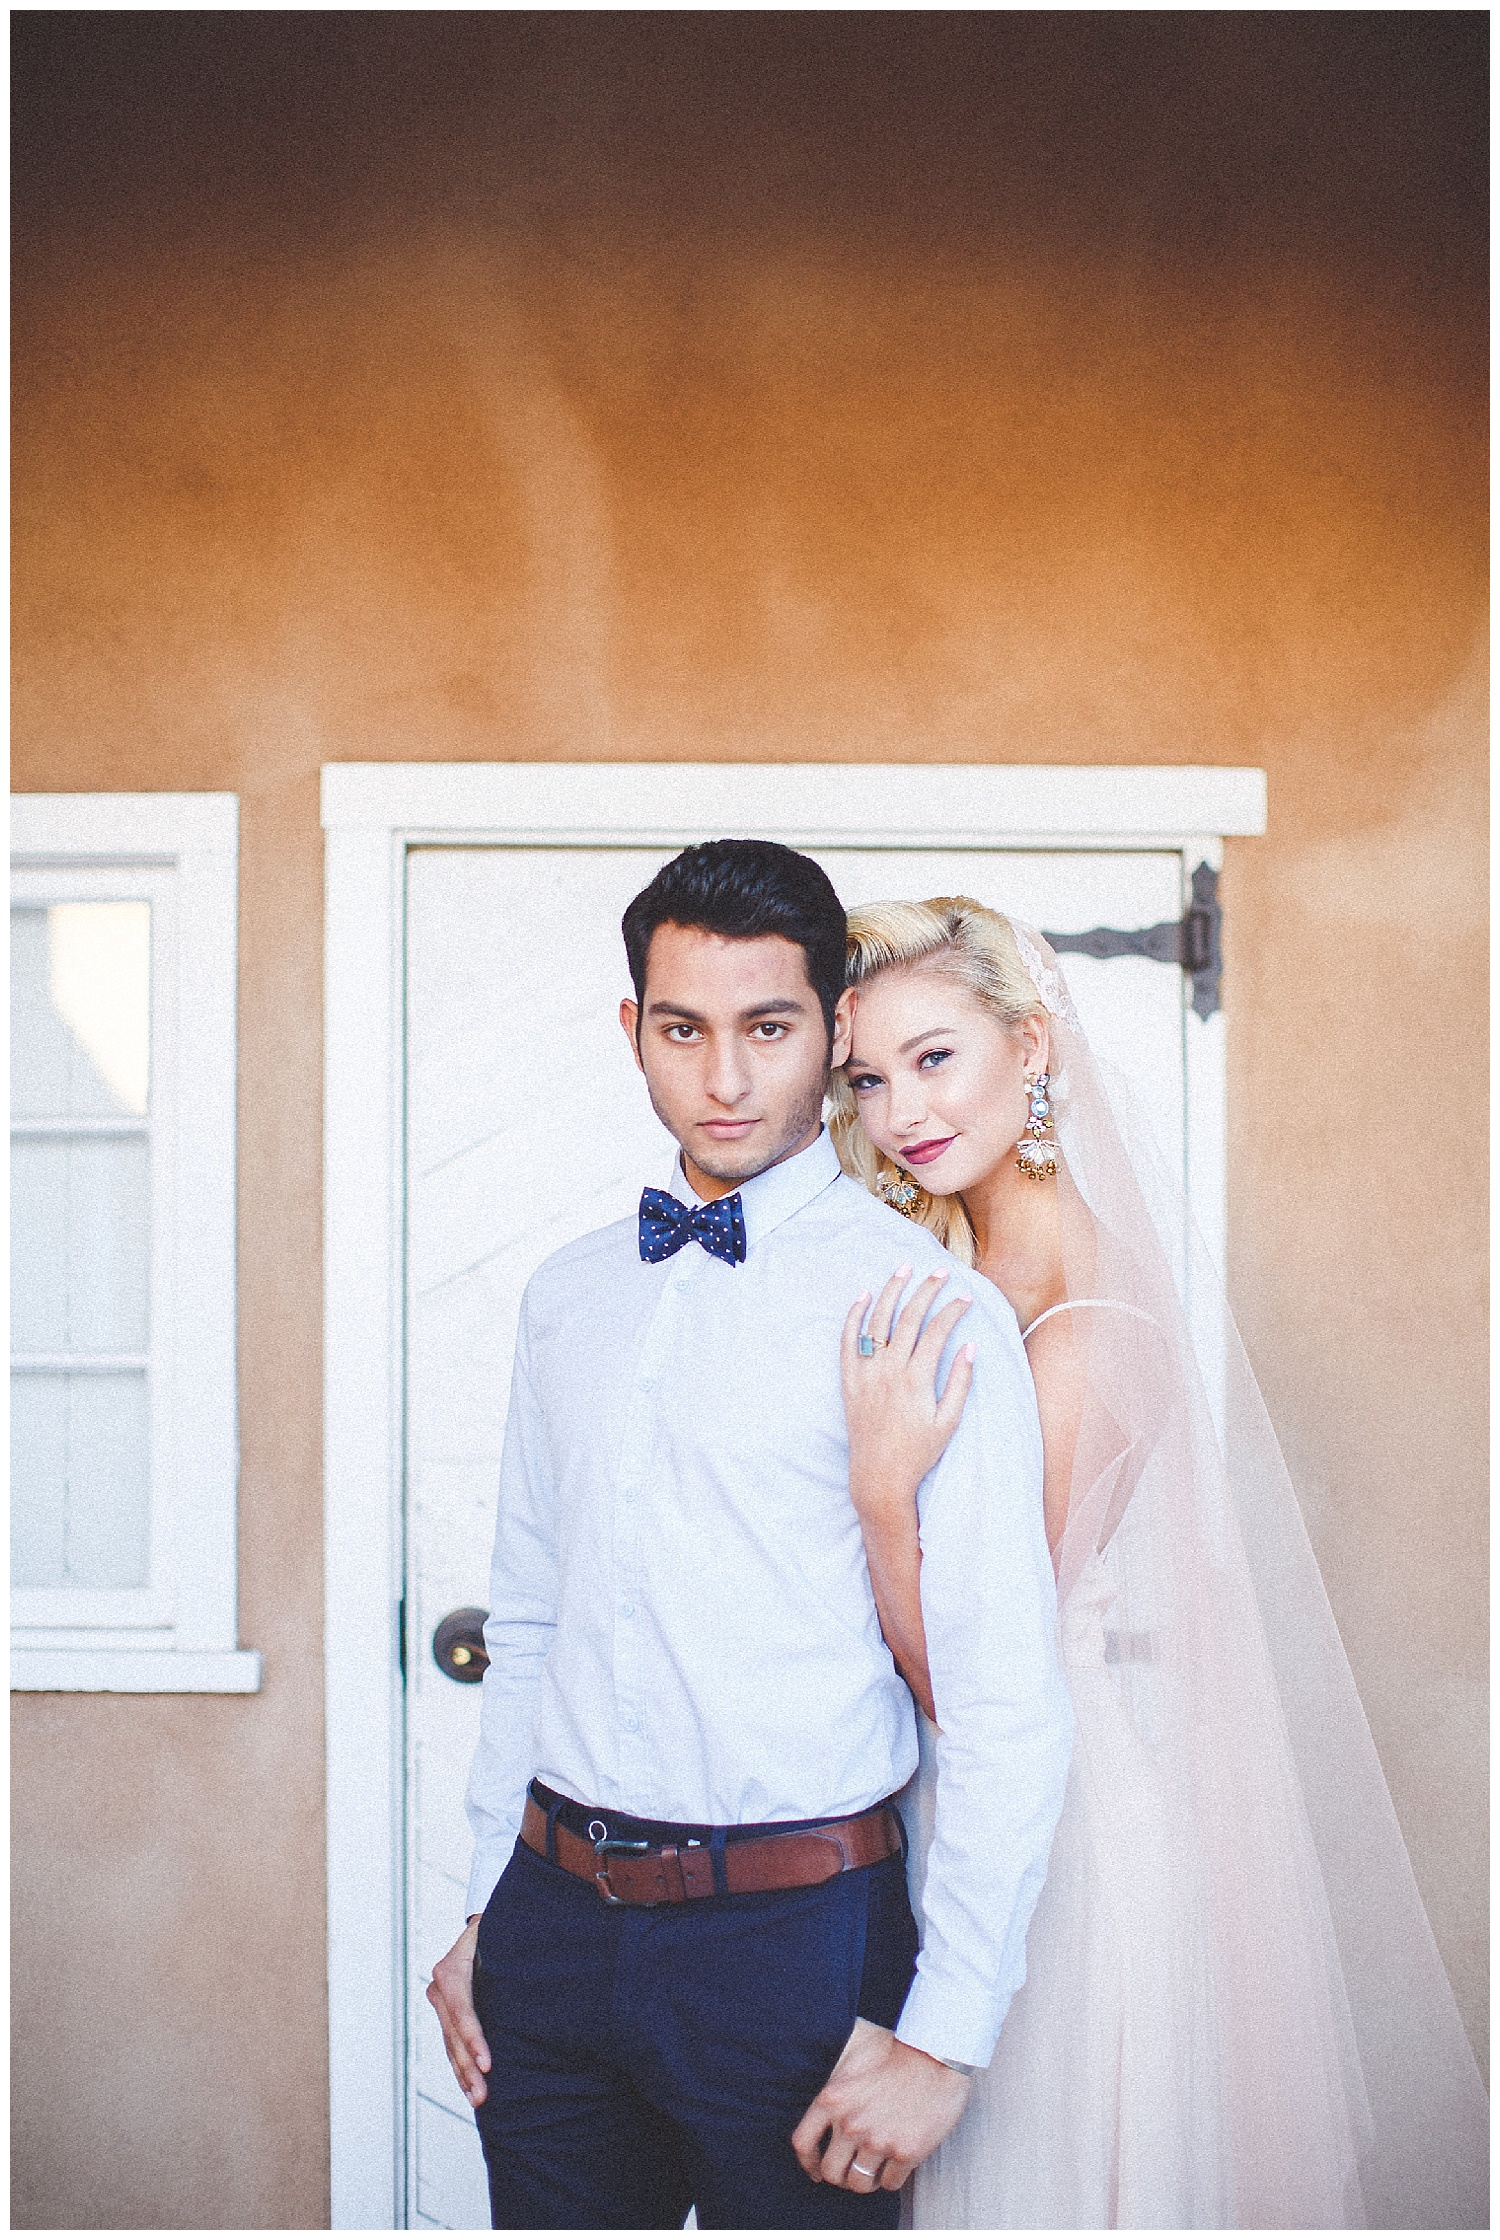 Pantone Spring Styled Wedding Shoot_0743.jpg